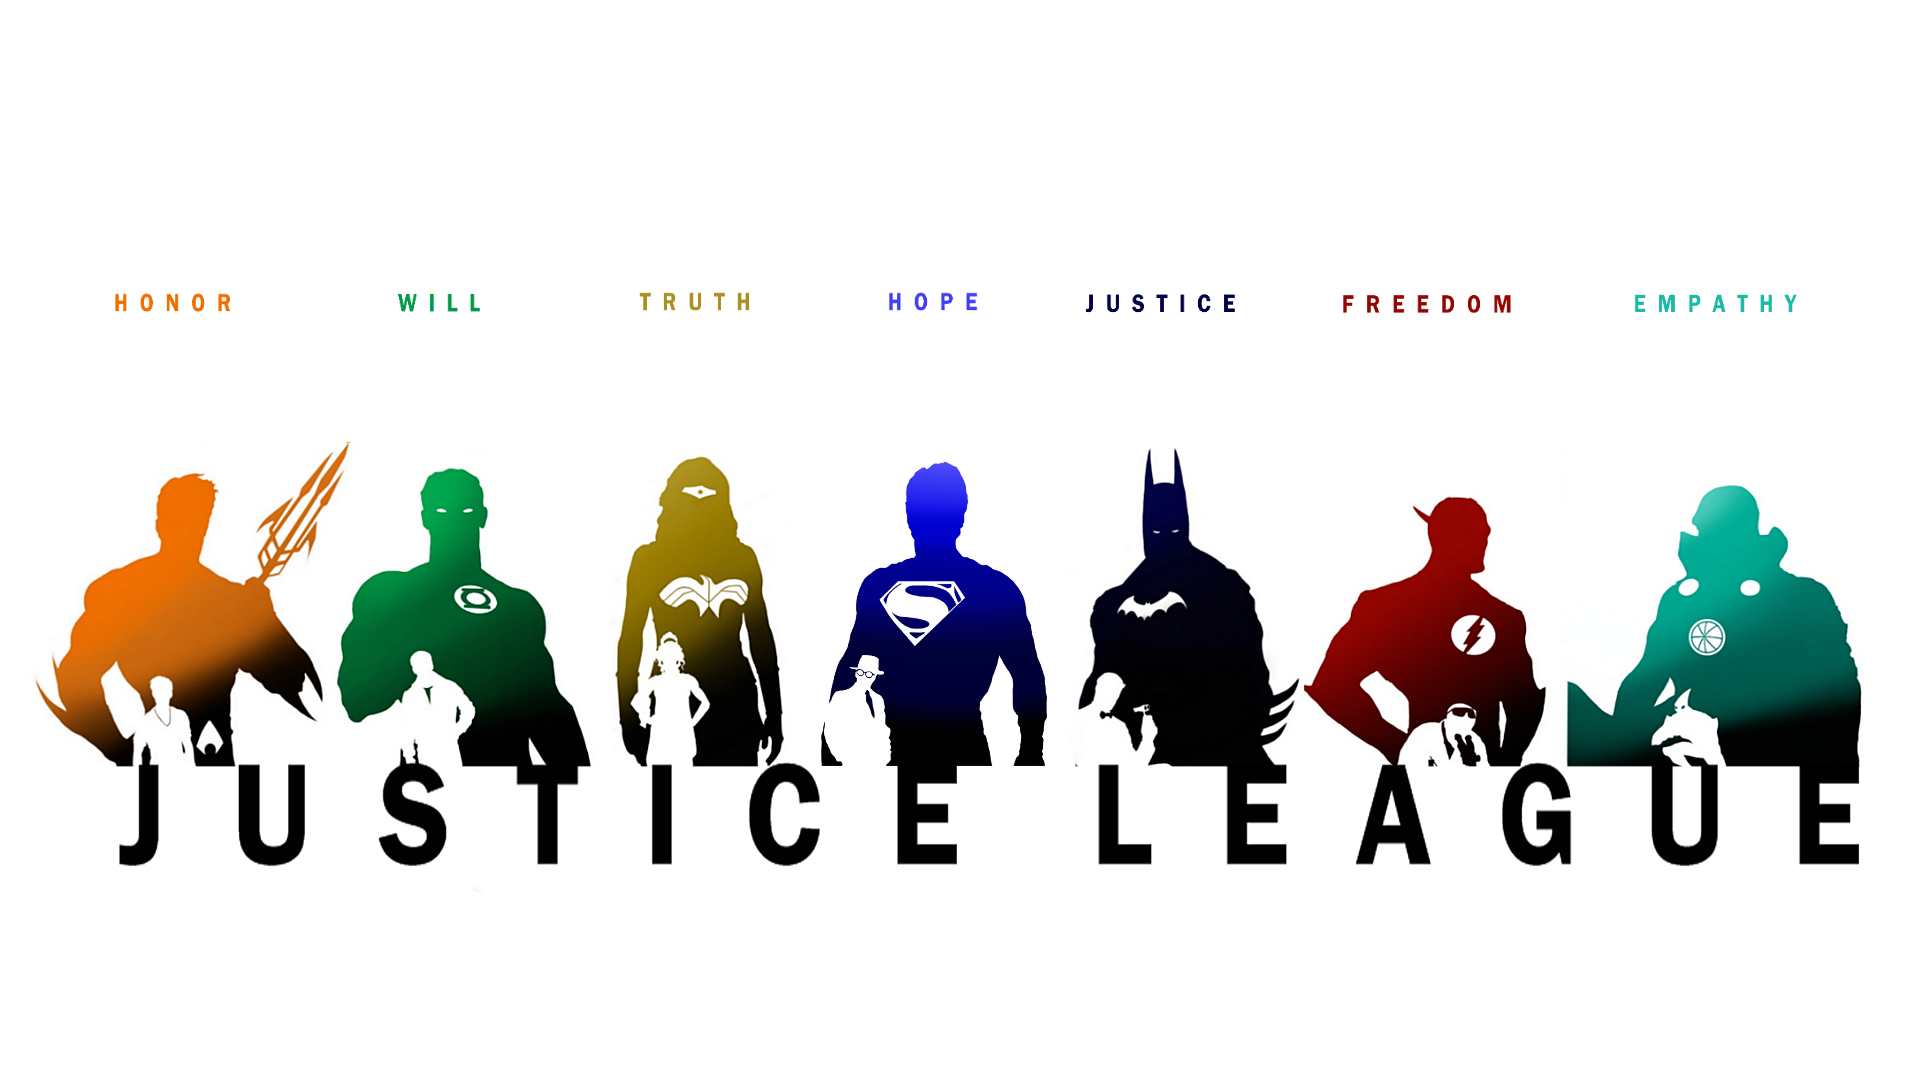 1920x1080 Justice League Wallpaper Background Image View